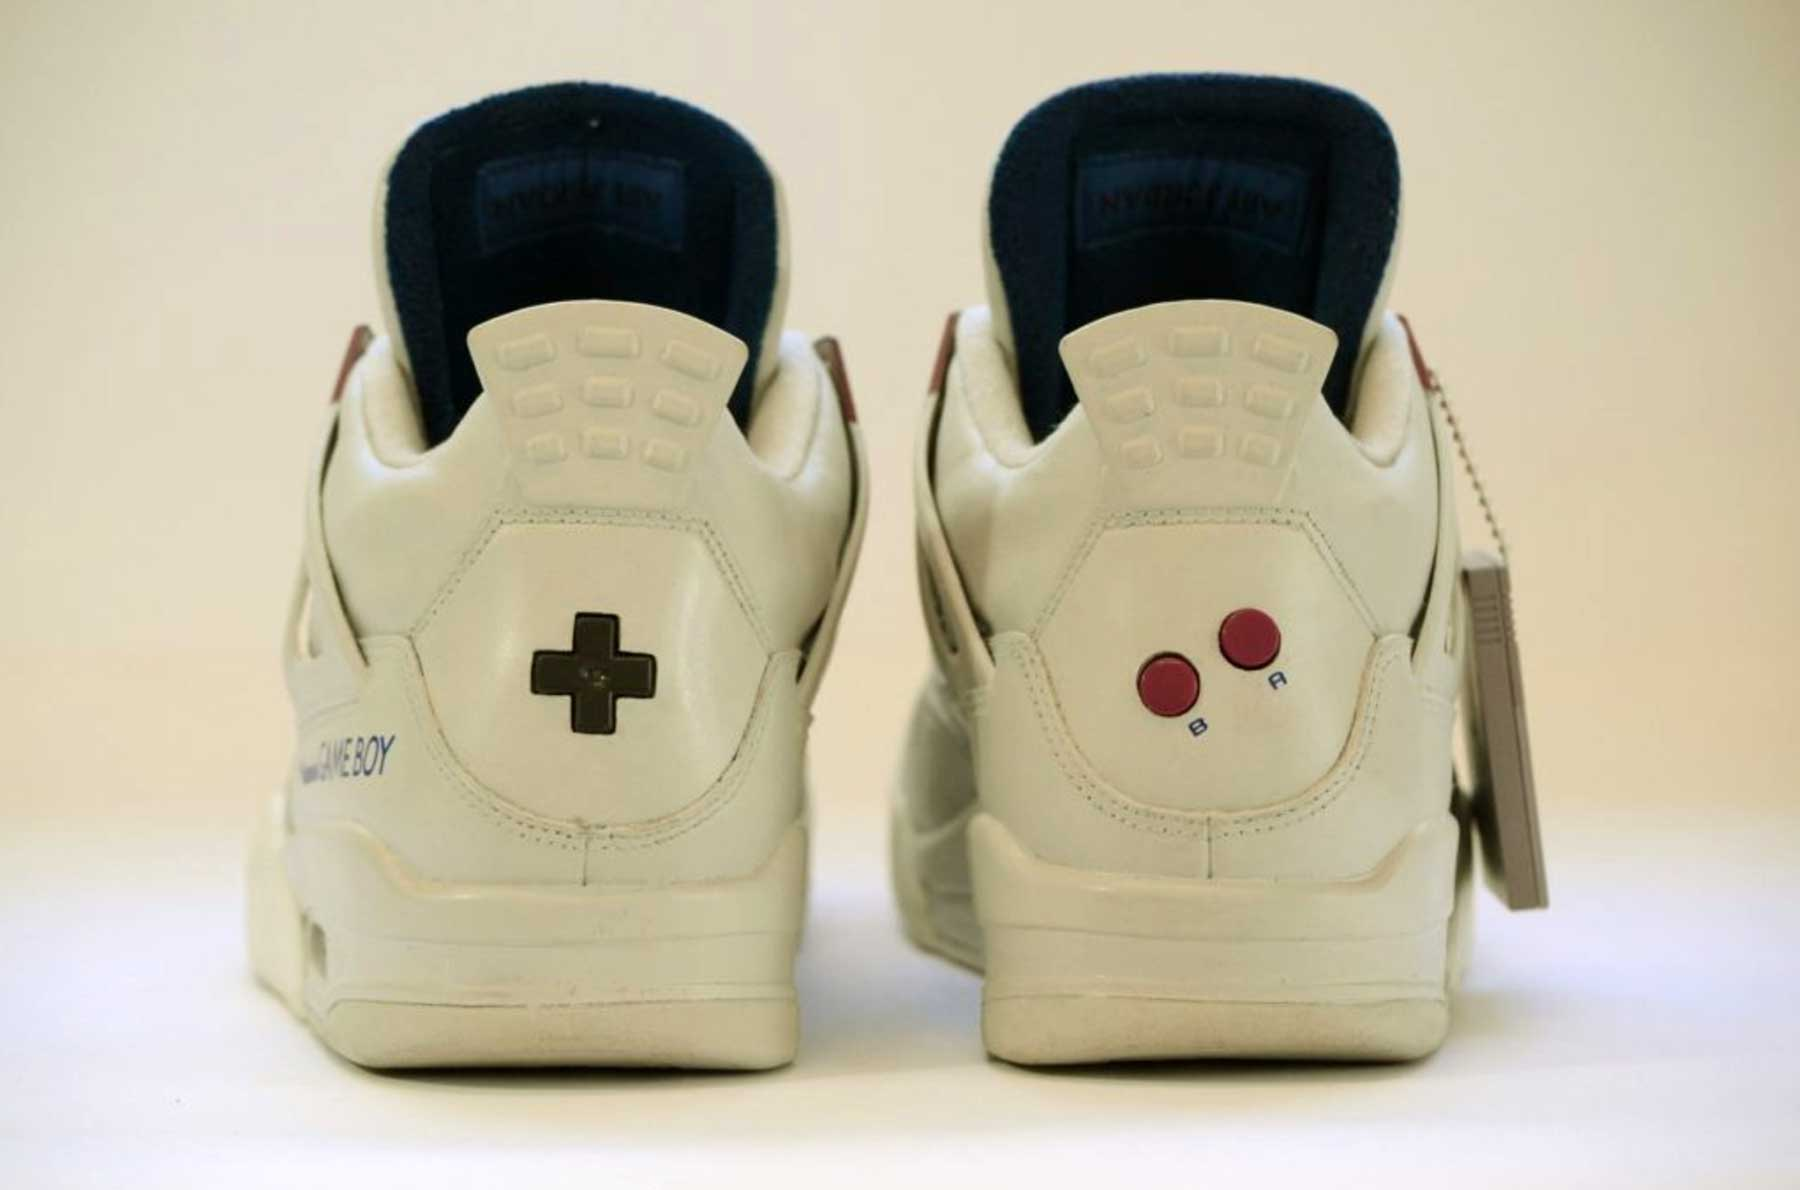 GAME BOY Sneakers GAME-BOY-Sneakers-Air-Jordan-IV-Super-Mario_03